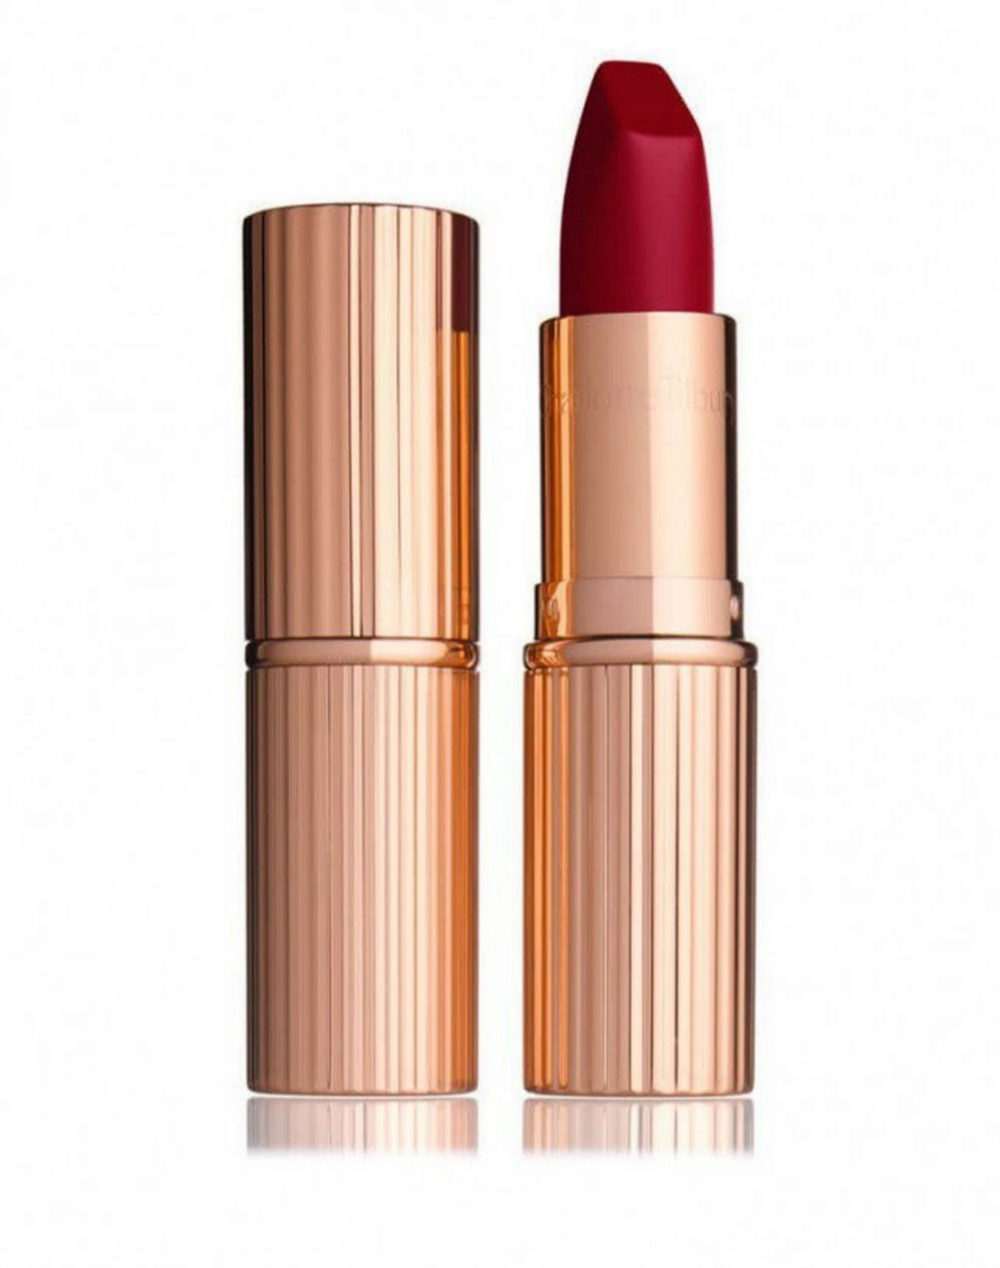 Red Carpet Lipstick mate (32,55 euros).